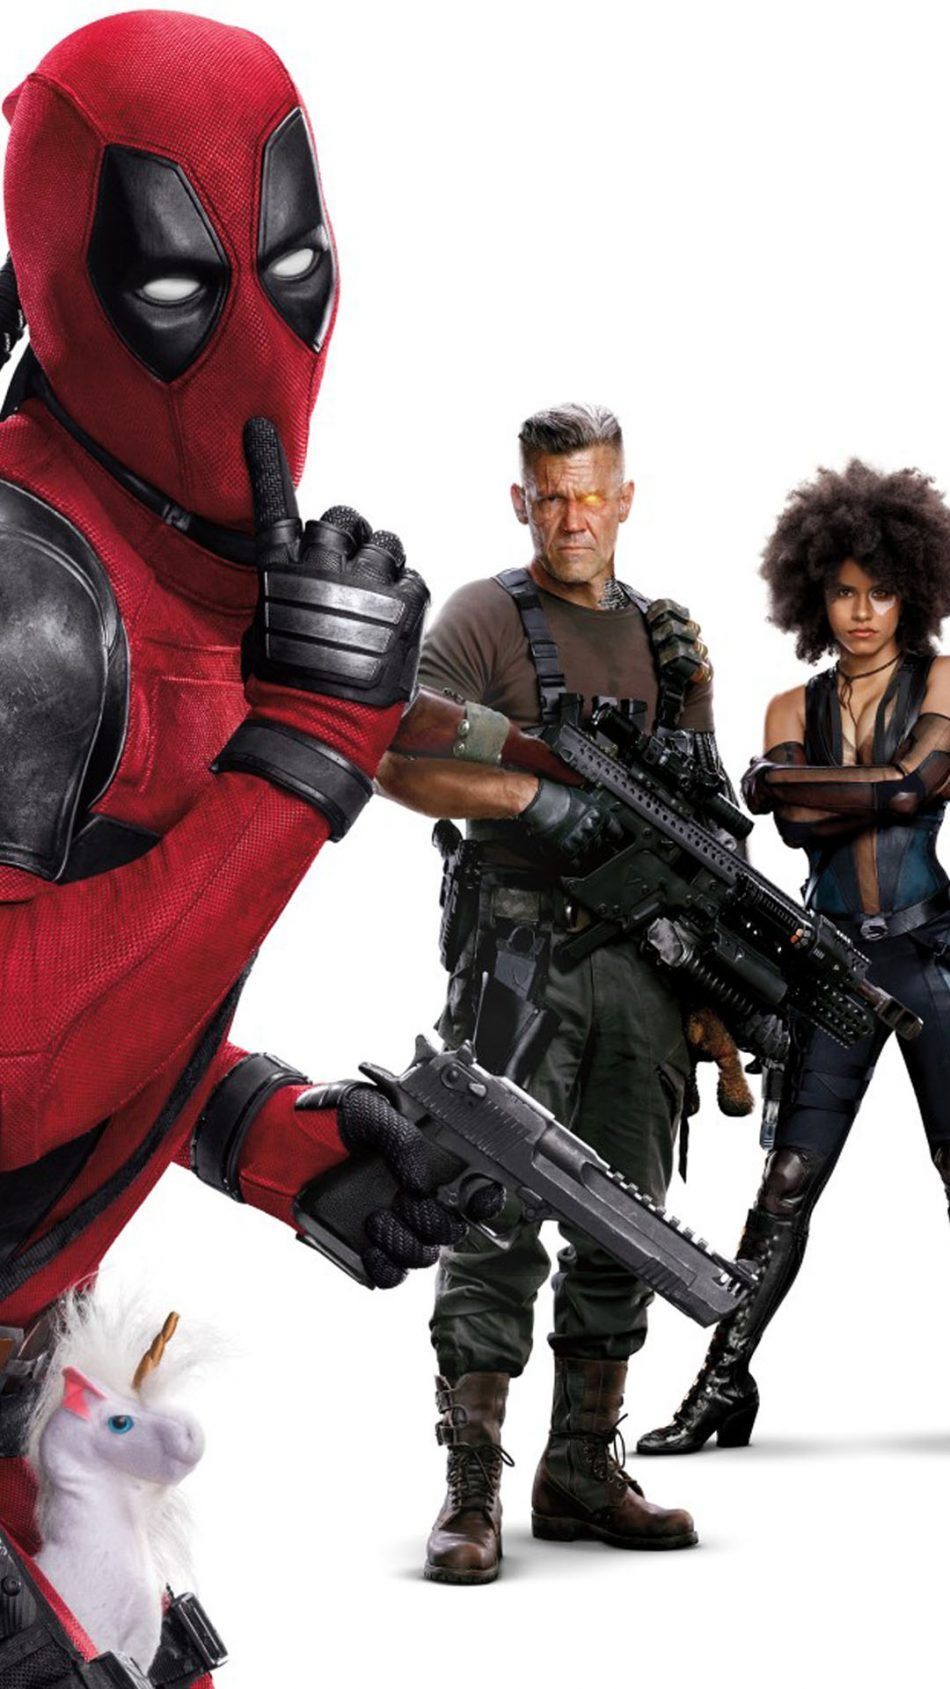 950x1689 Domino, Deadpool, Cable In Deadpool 2 | Модели | Pinterest | Mobile ...